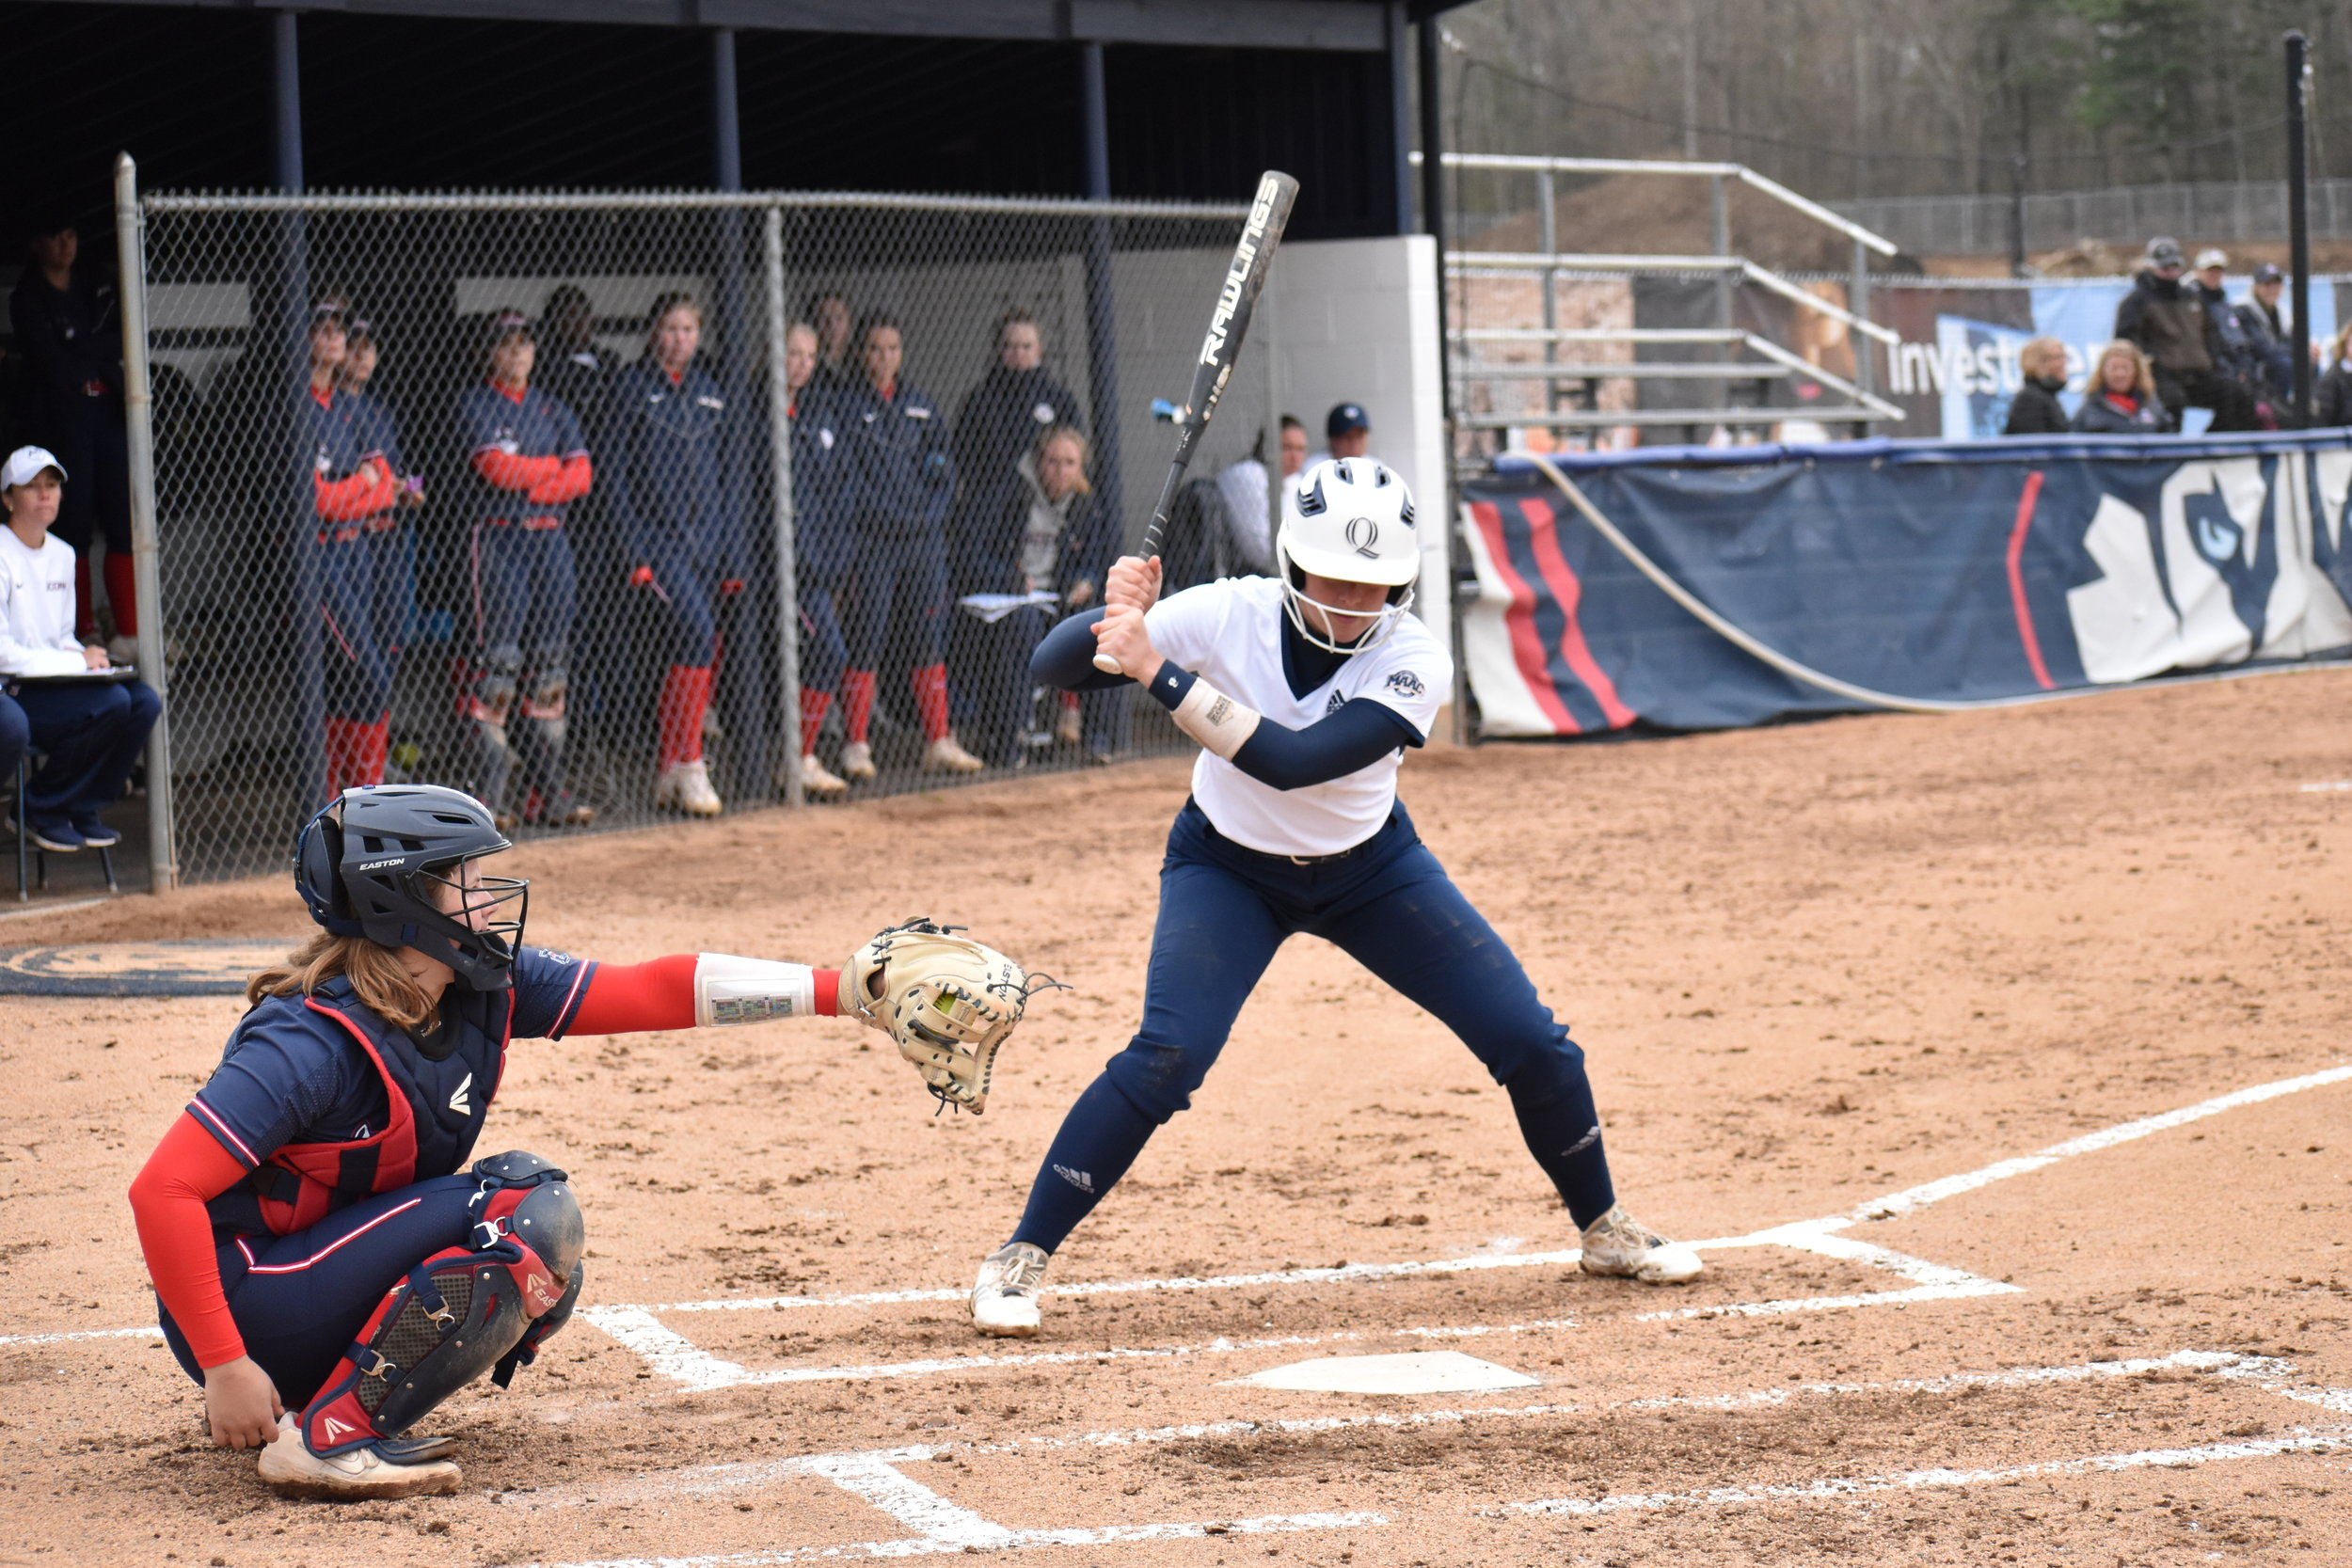 After 11 innings, UConn women's softball clenched a 2-1 win at home against the Quinnipiac Bobcats. (Photo by Hanaisha Lewis/The Daily Campus)